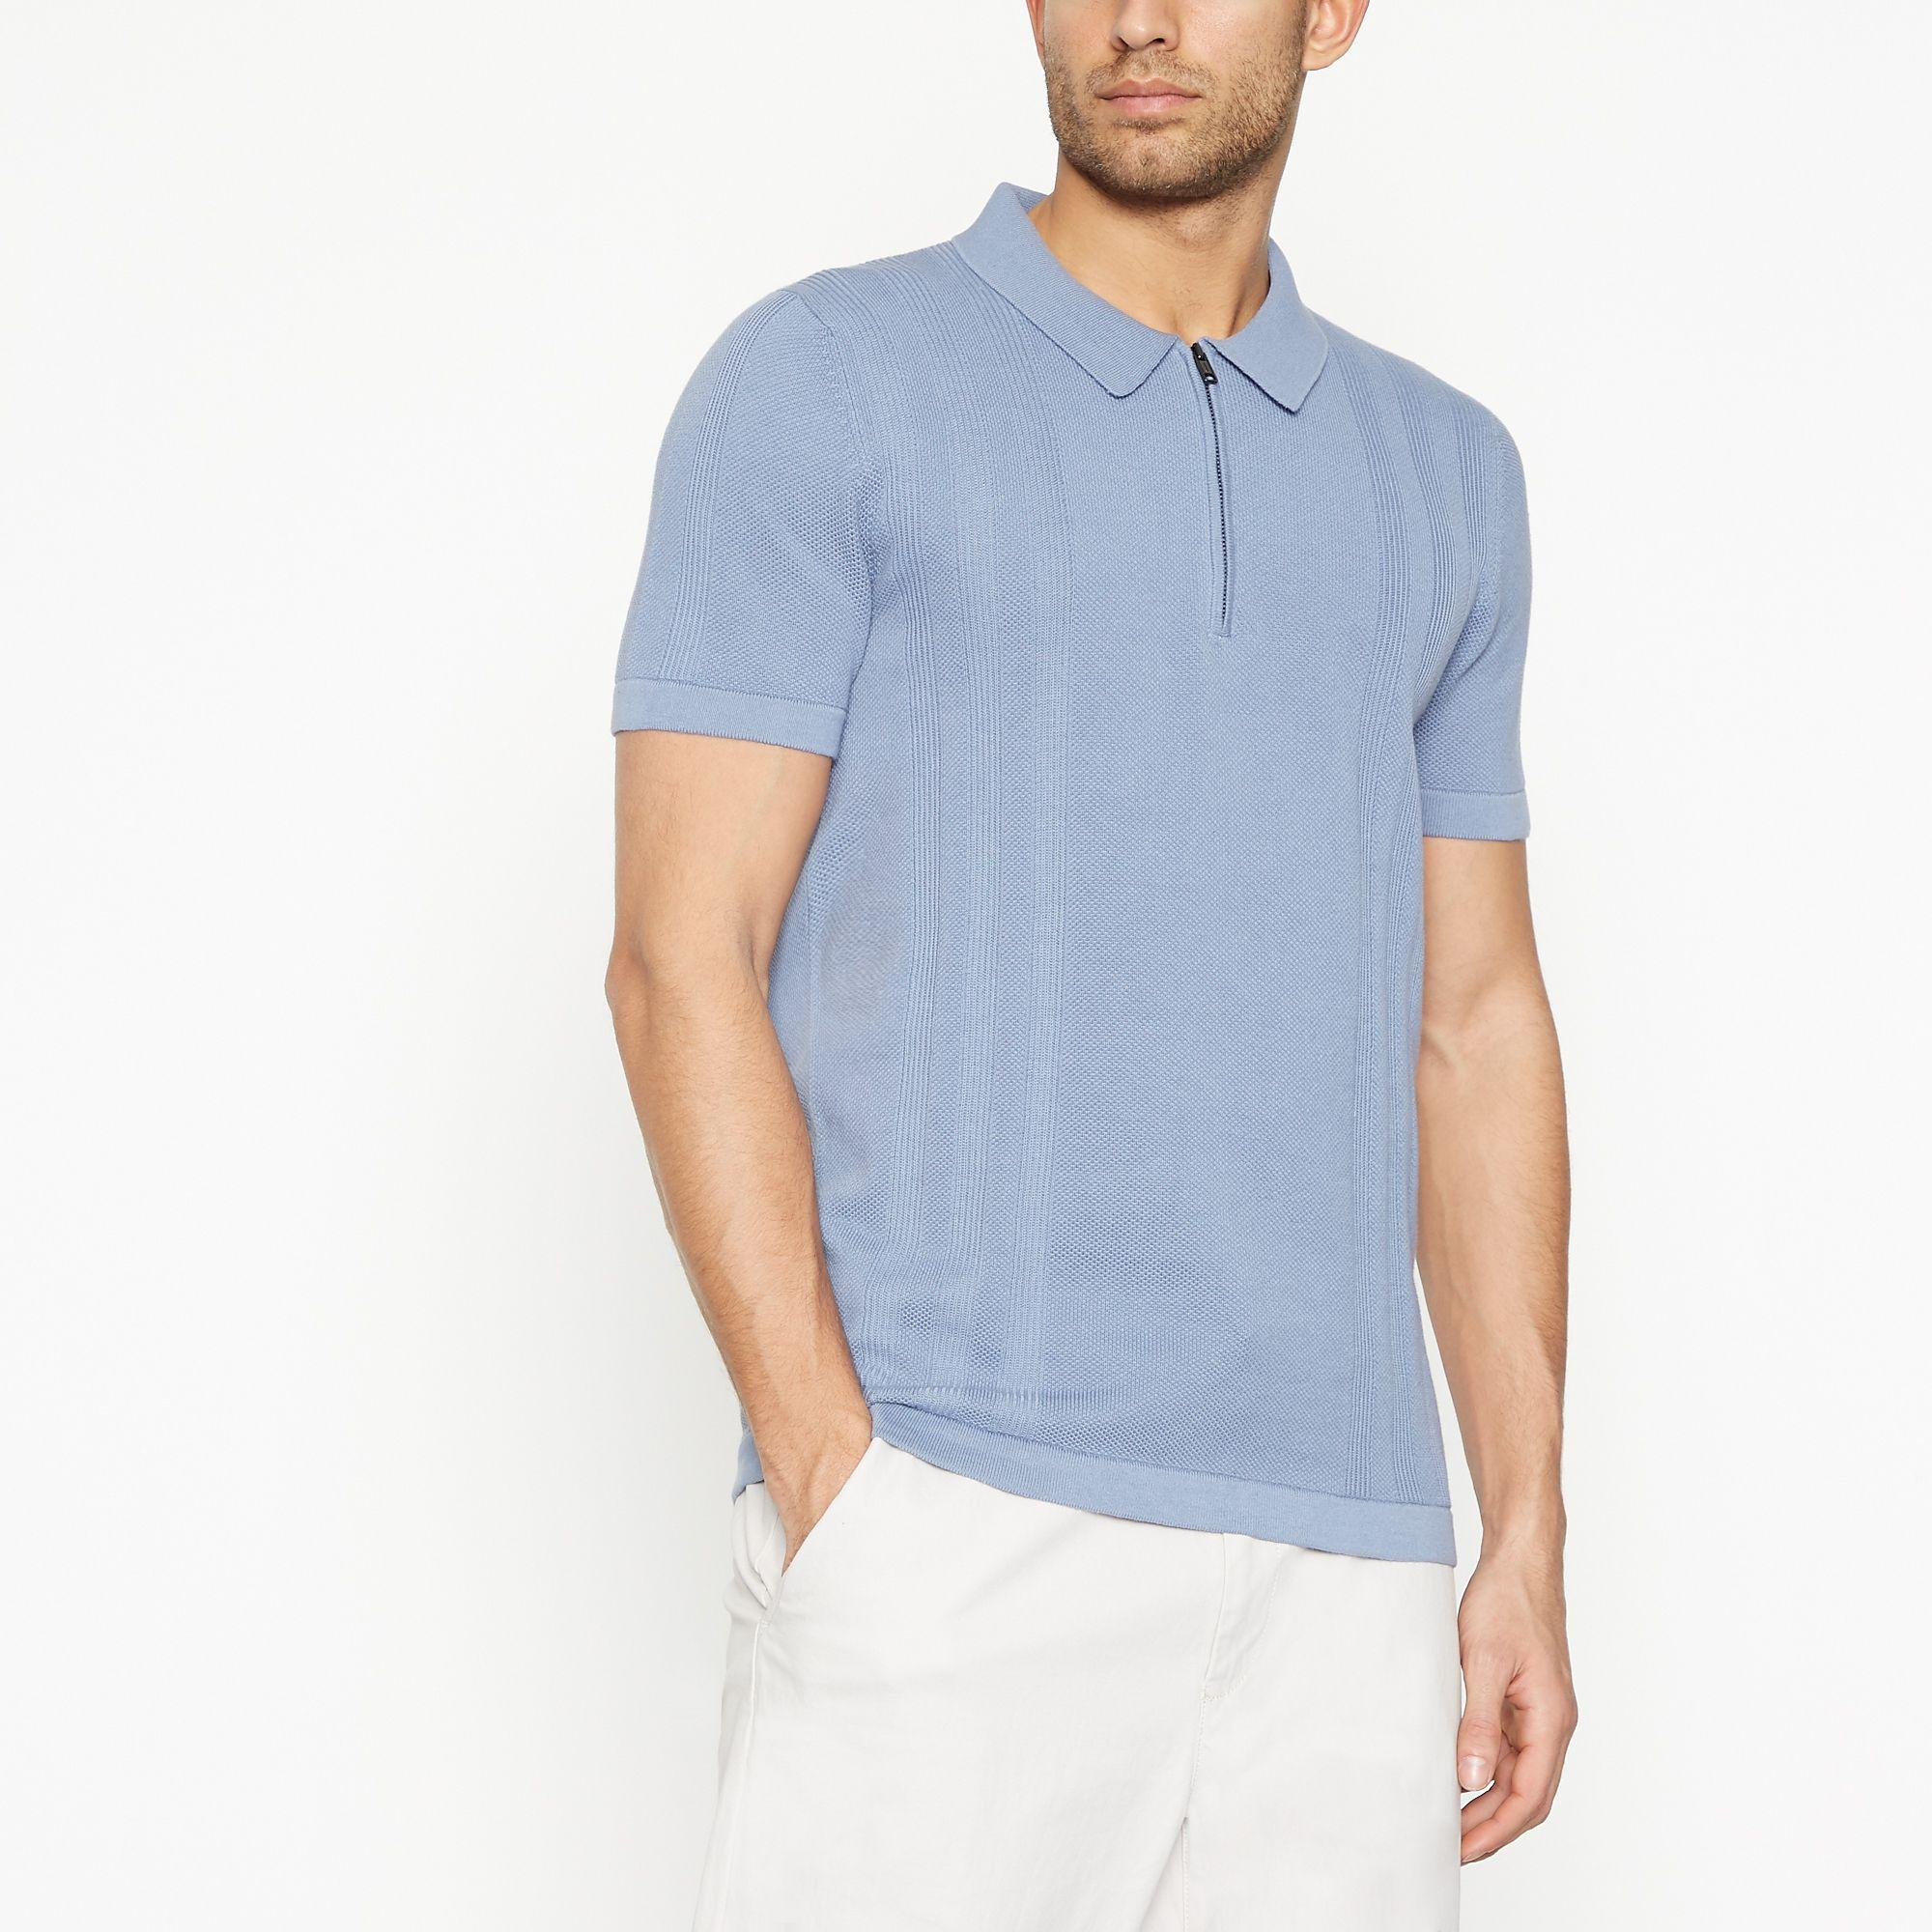 613271e4 J By Jasper Conran Blue Vertical Striped Knitted Polo Shirt in Blue ...